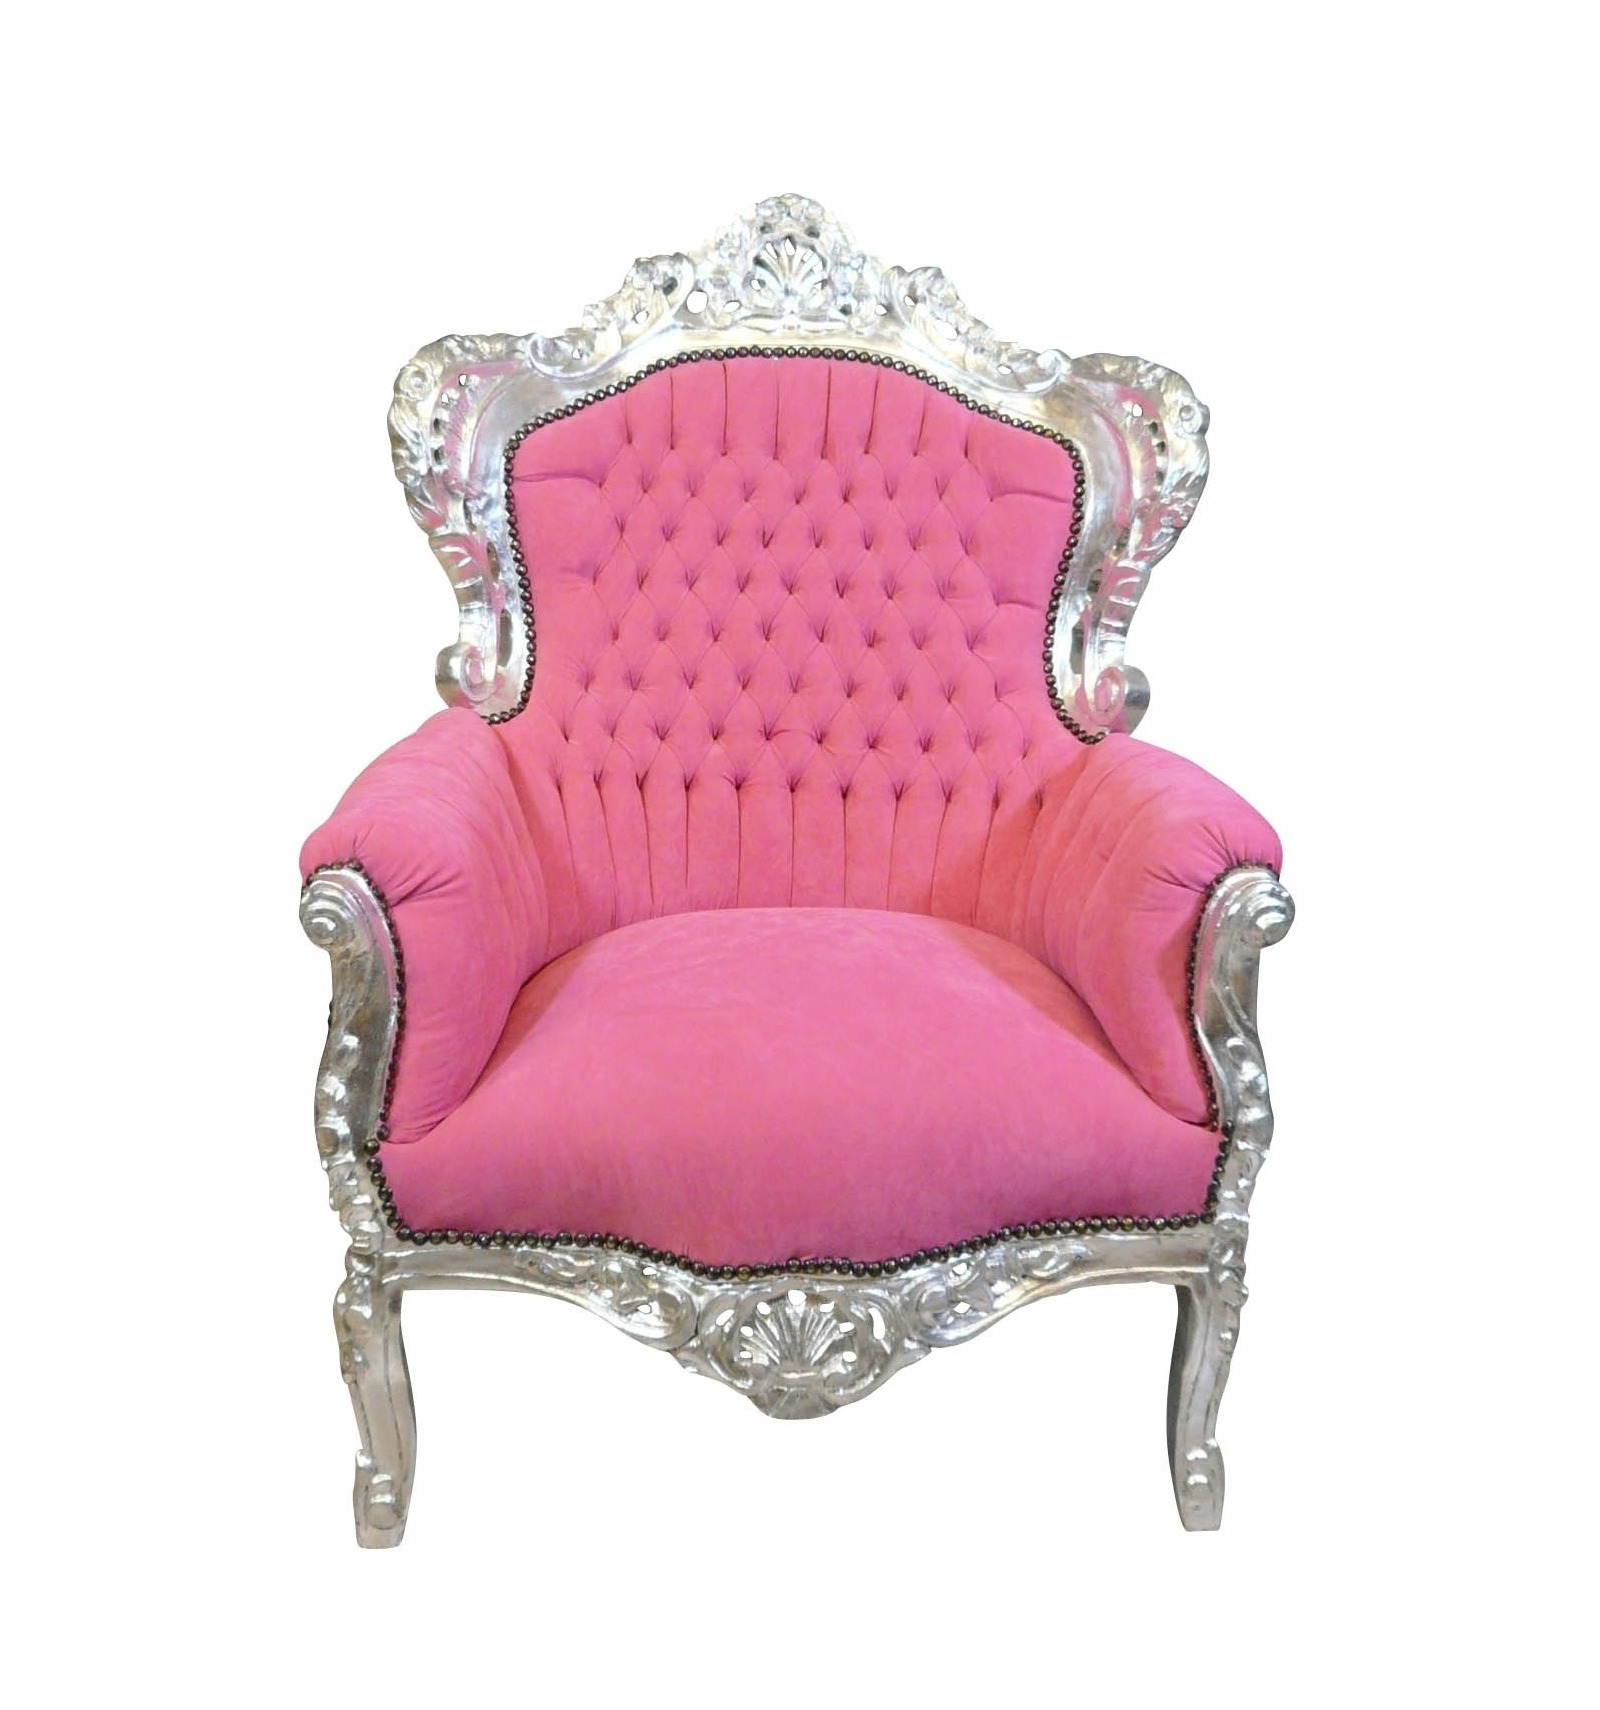 fauteuil baroque rose chaise table commode et mobilier. Black Bedroom Furniture Sets. Home Design Ideas